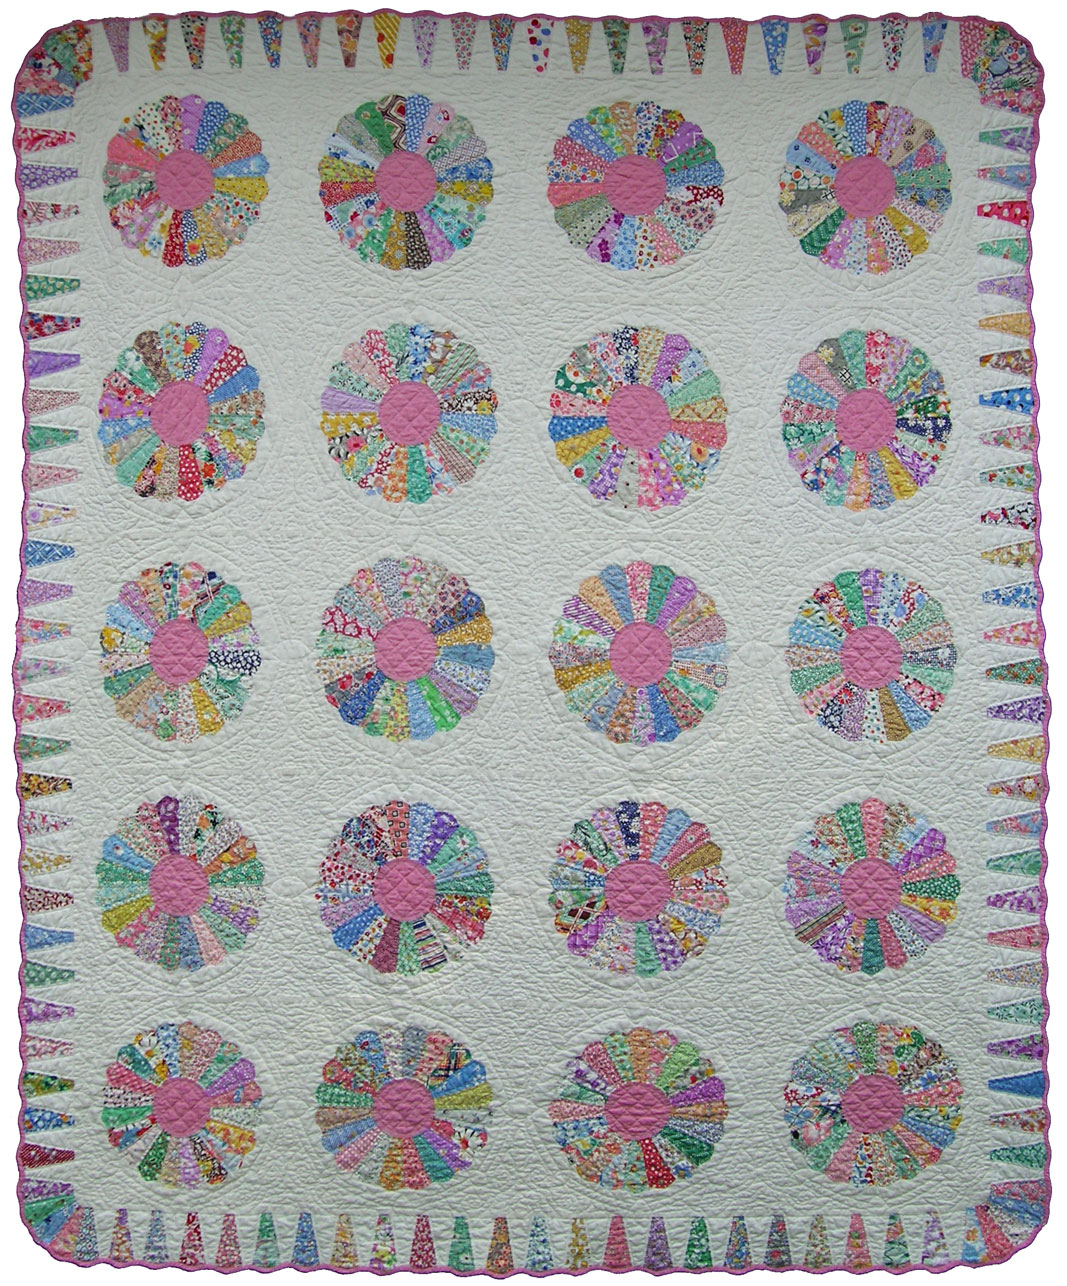 Dresden Plate Quilt – Q is for Quilter